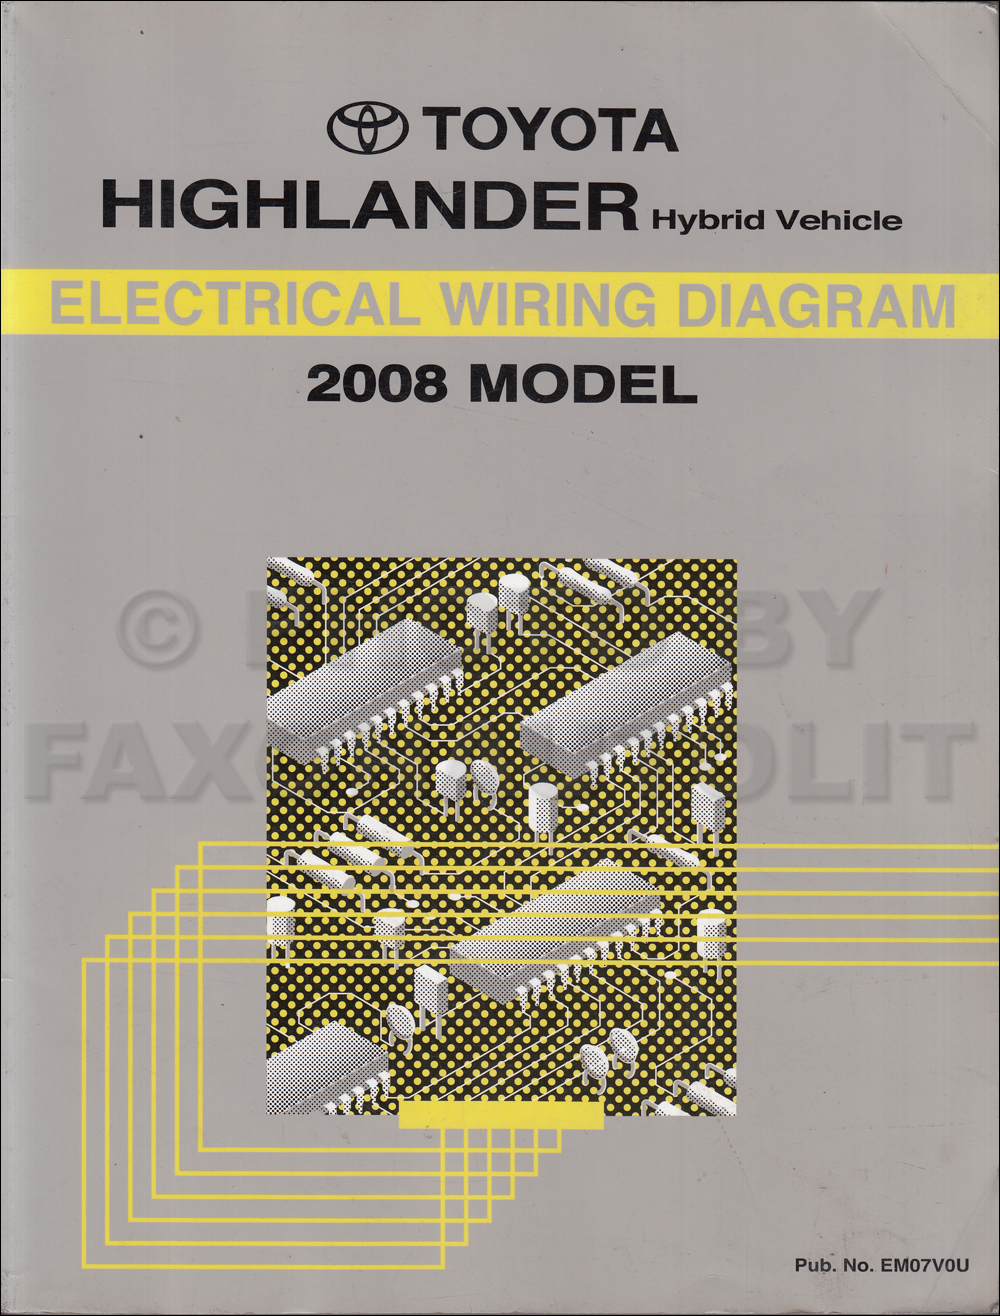 2008 Toyota Highlander Wiring Diagram Archive Of Automotive Headlight Wire For Buick Century